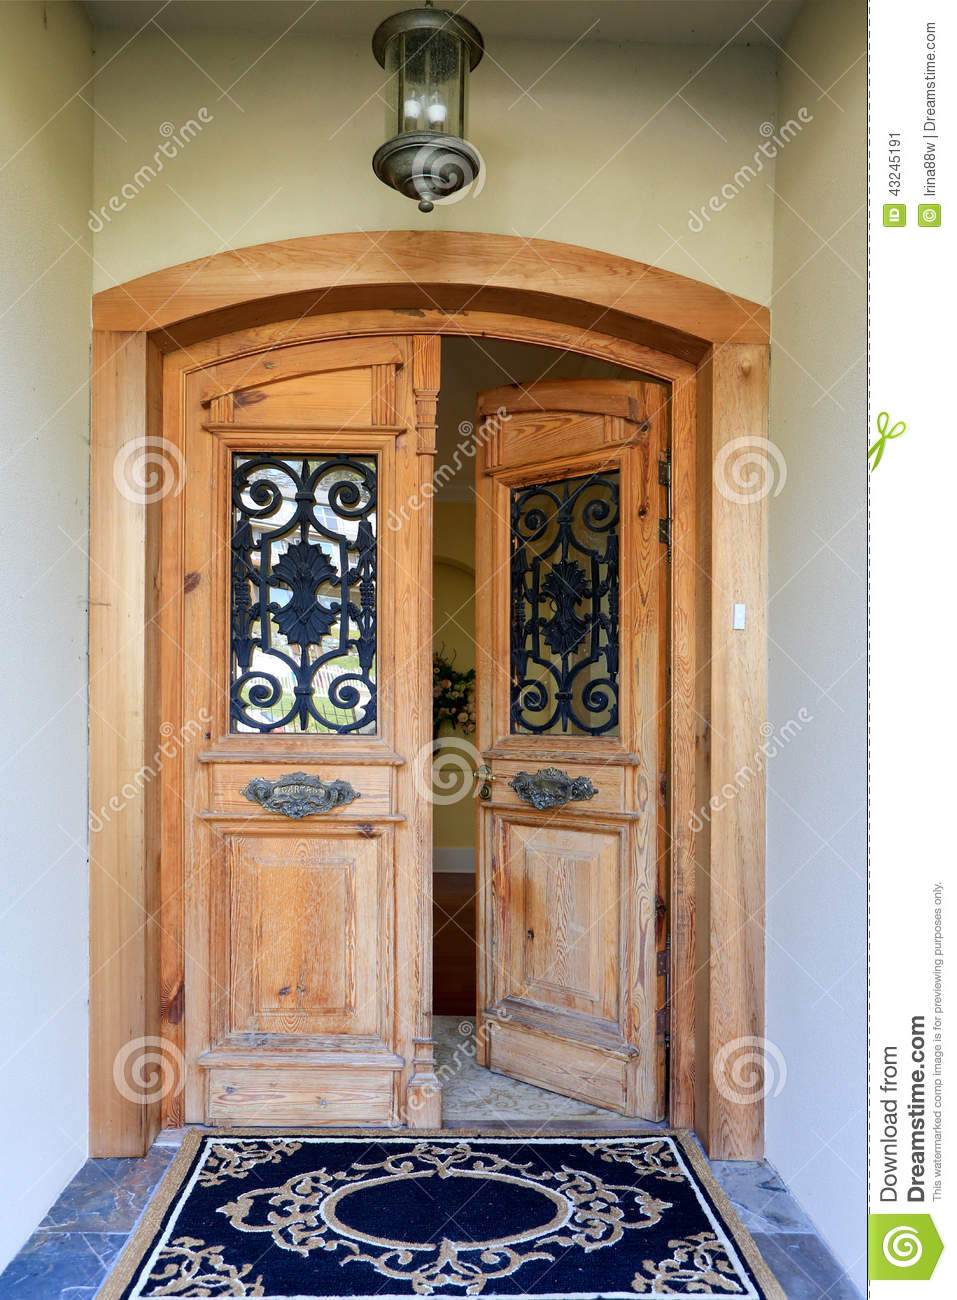 Luxury House Entrance Porch With Open Door Stock Photo